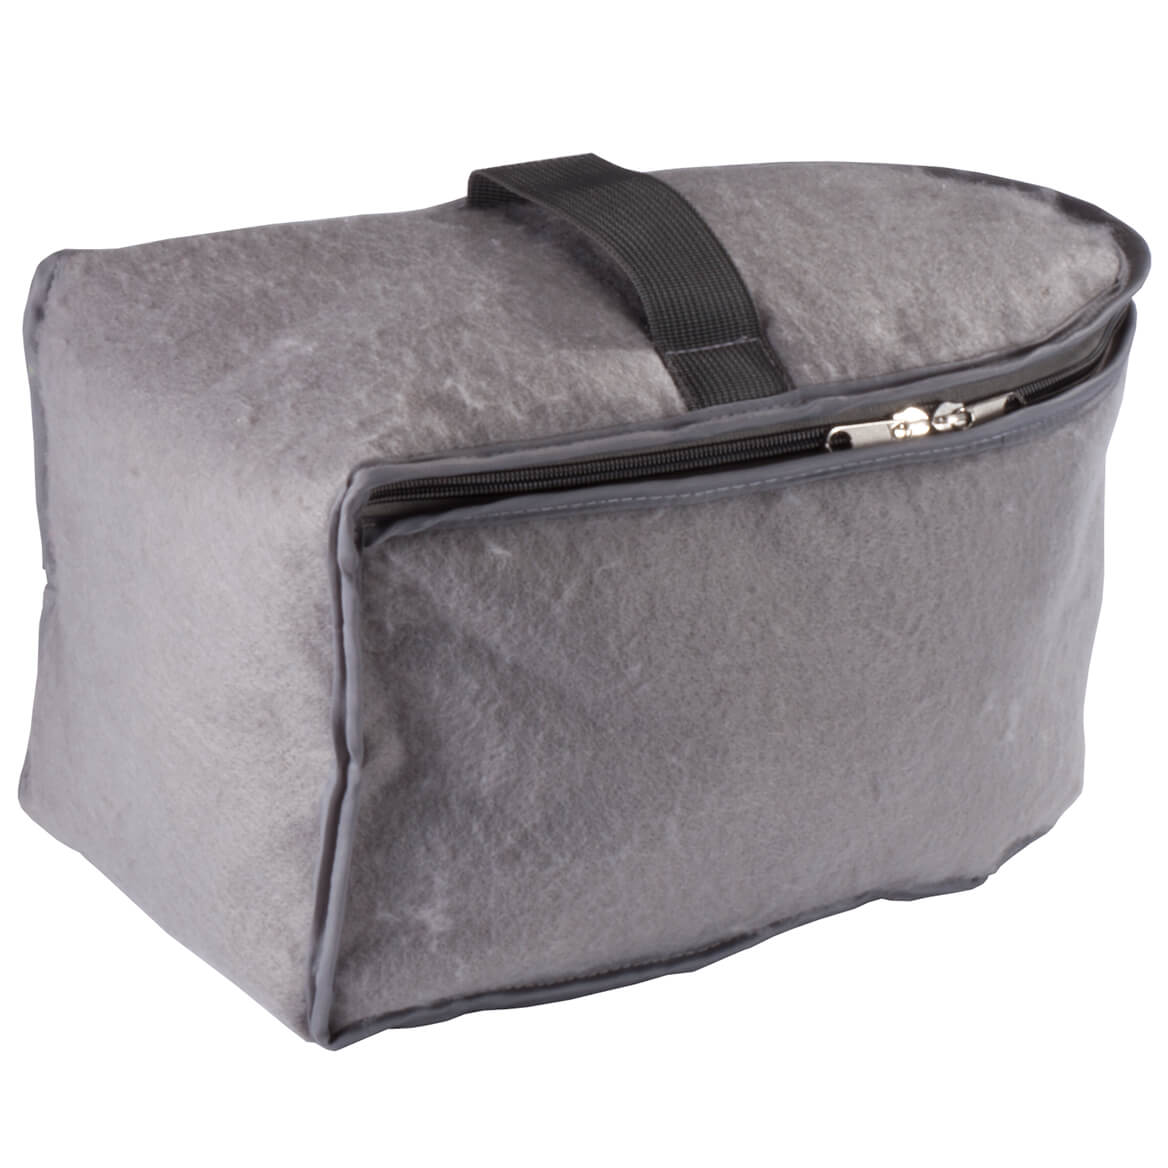 Heat Resistant Iron Storage Case